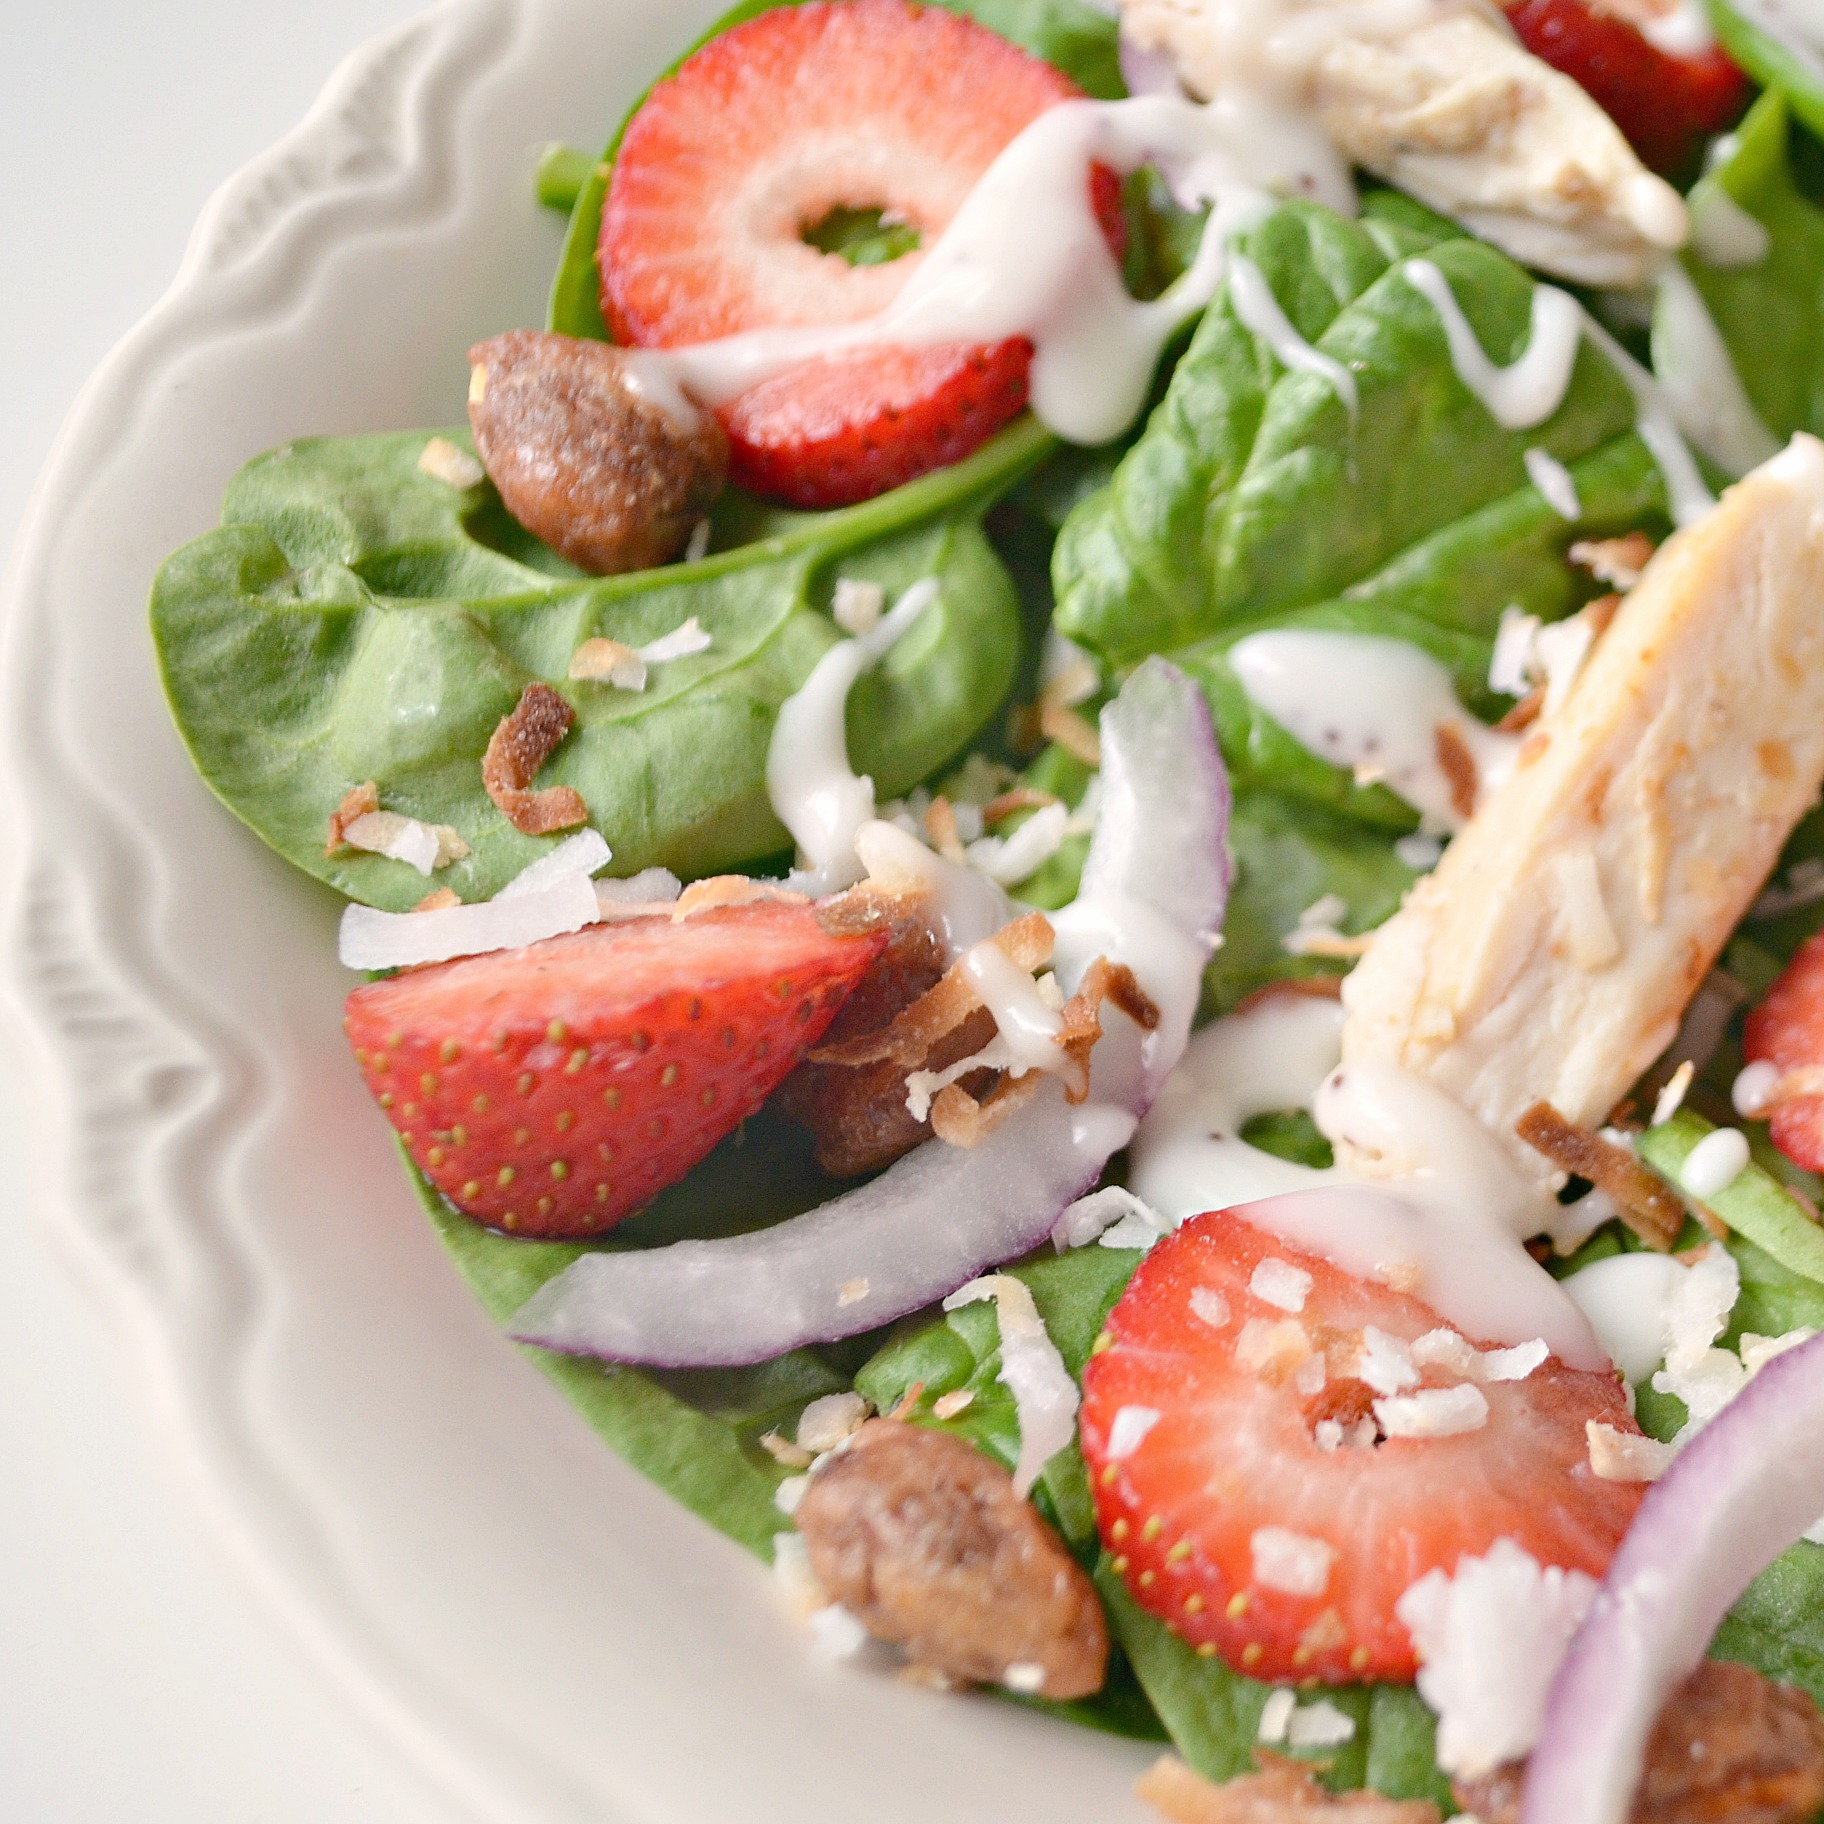 Grilled Chicken and Strawberry Spinach Salad